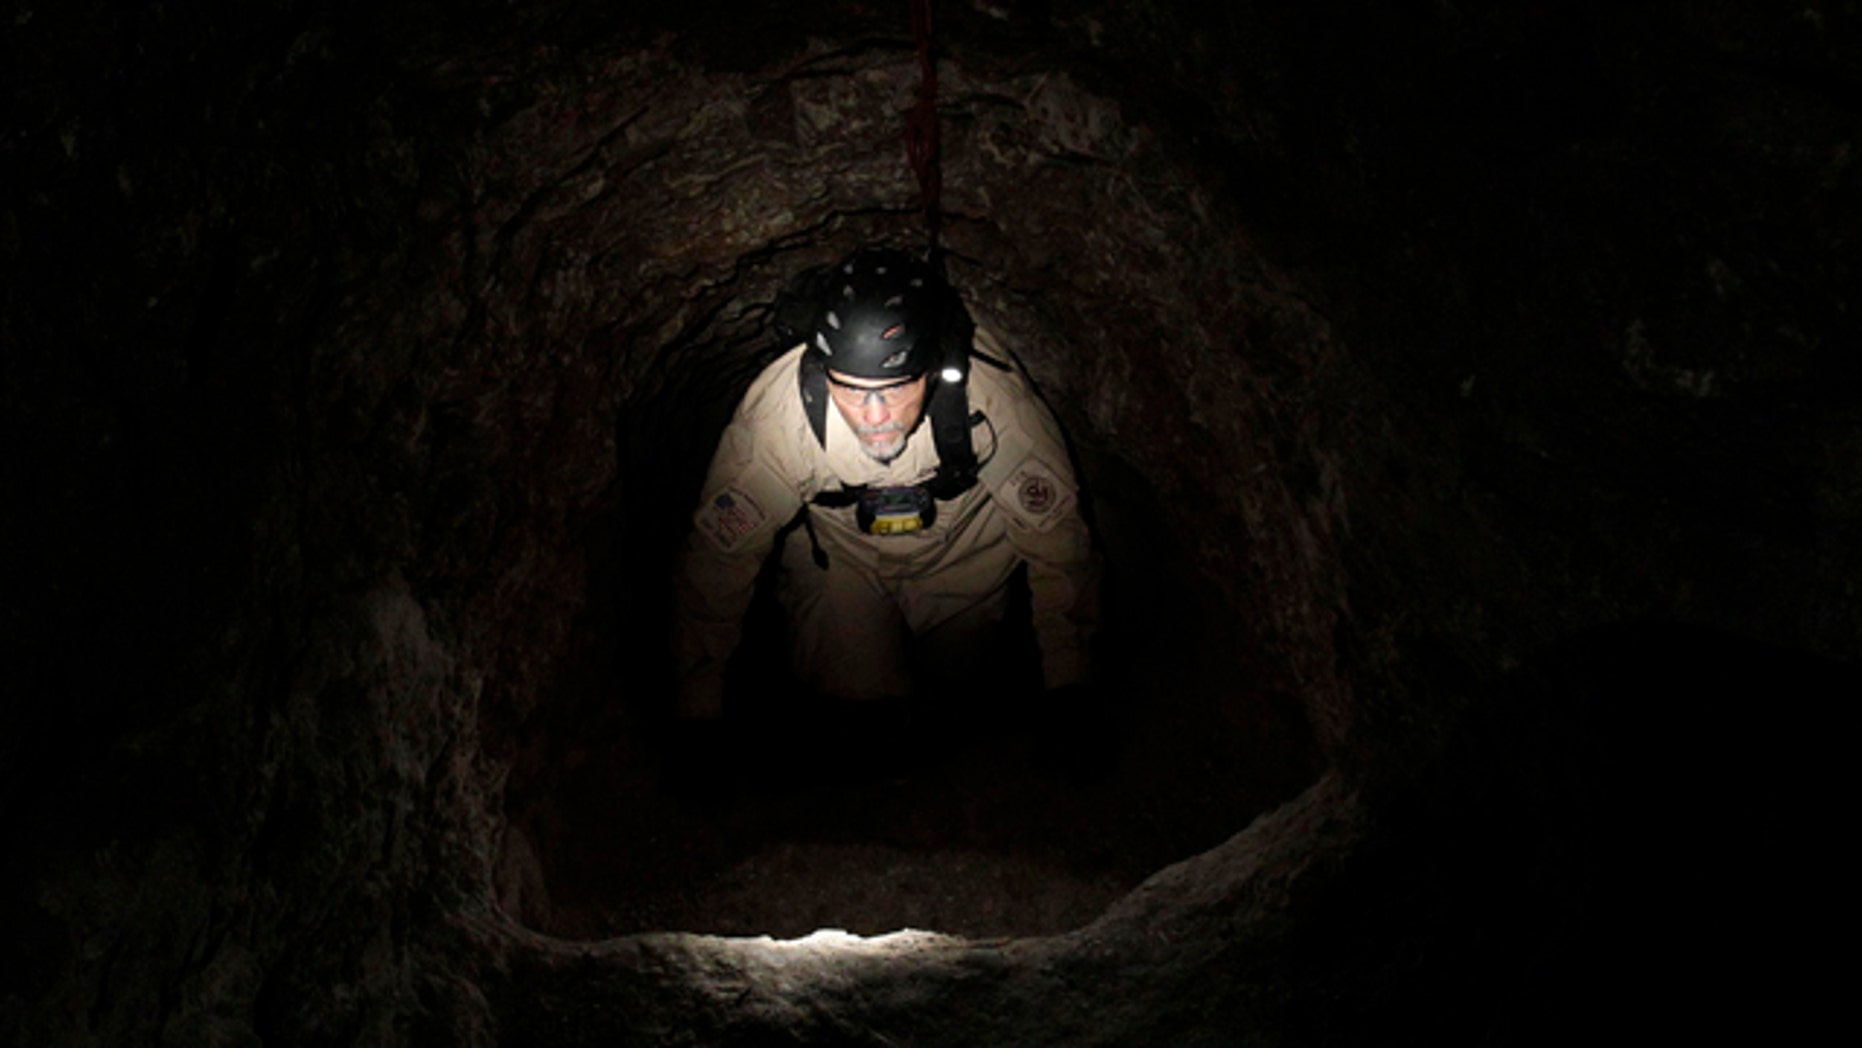 A U.S. Immigration and Customs Enforcement agent climbs in a  drug tunnel in San Diego on  Dec. 2, 2010. Tunnels are a commonly used method to transport drugs from Mexico to the U.S.